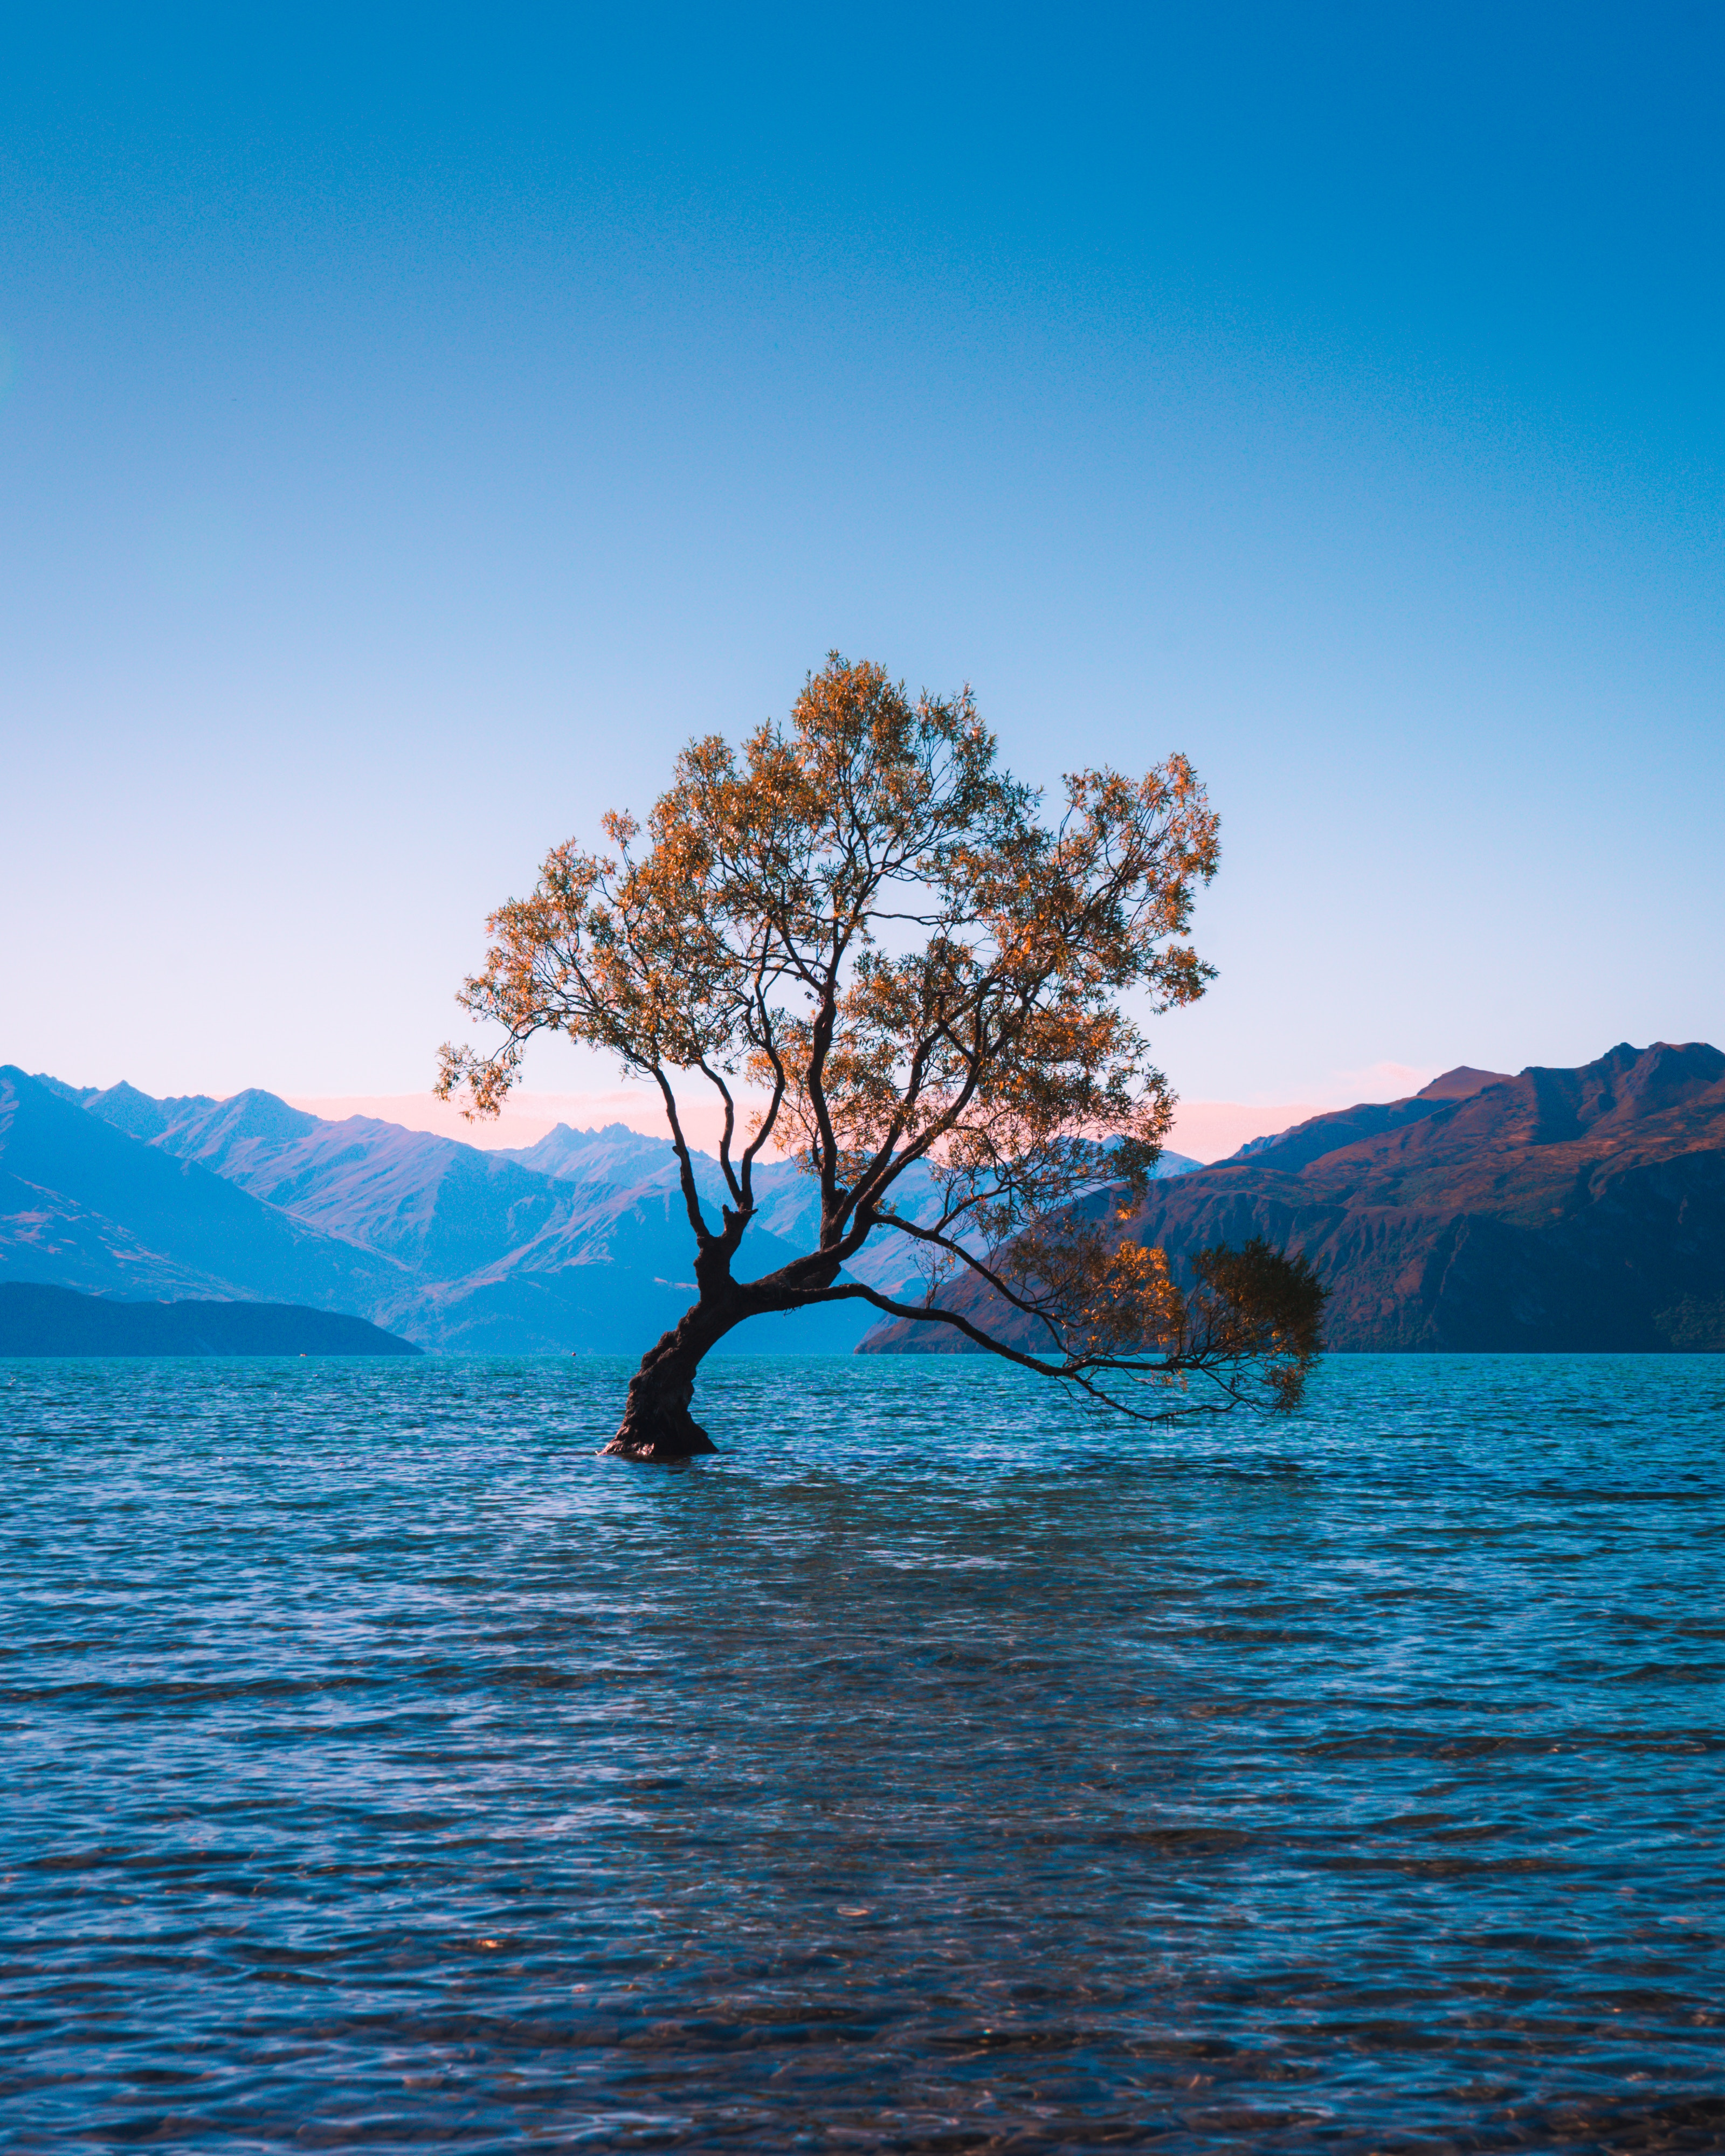 73474 download wallpaper Nature, Lake, New Zealand, Wood, Tree, Wanaka, Alone, Lonely screensavers and pictures for free